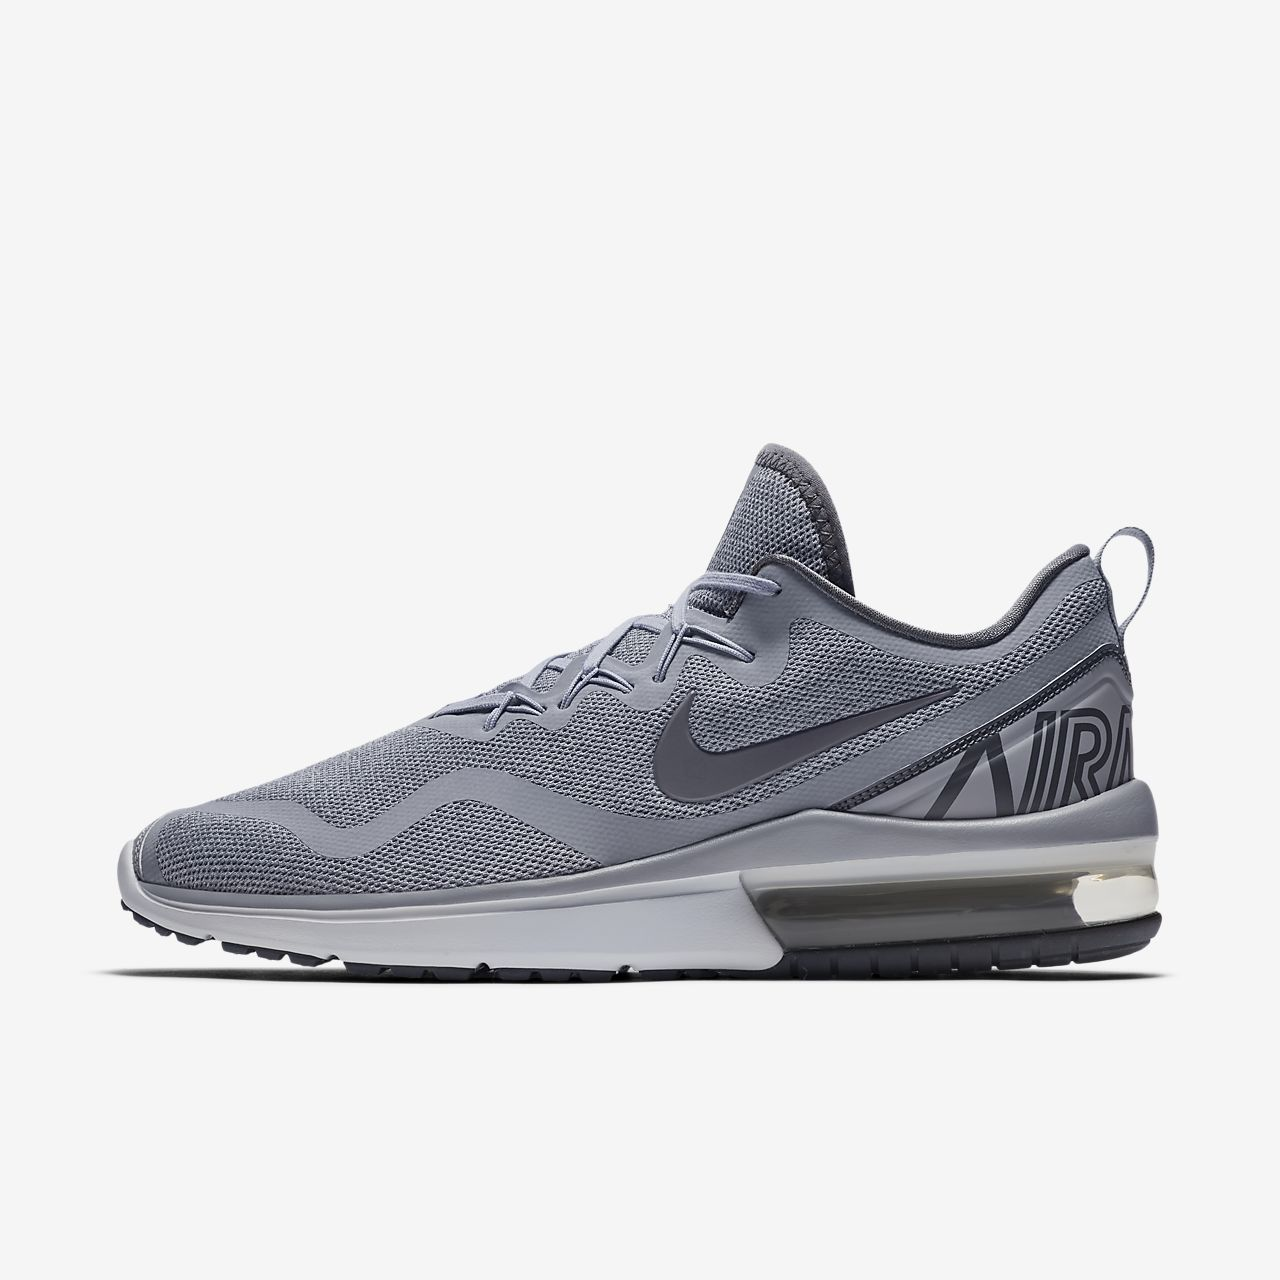 nike running shoes cheap, NIKE Men's Air Max Fury Running